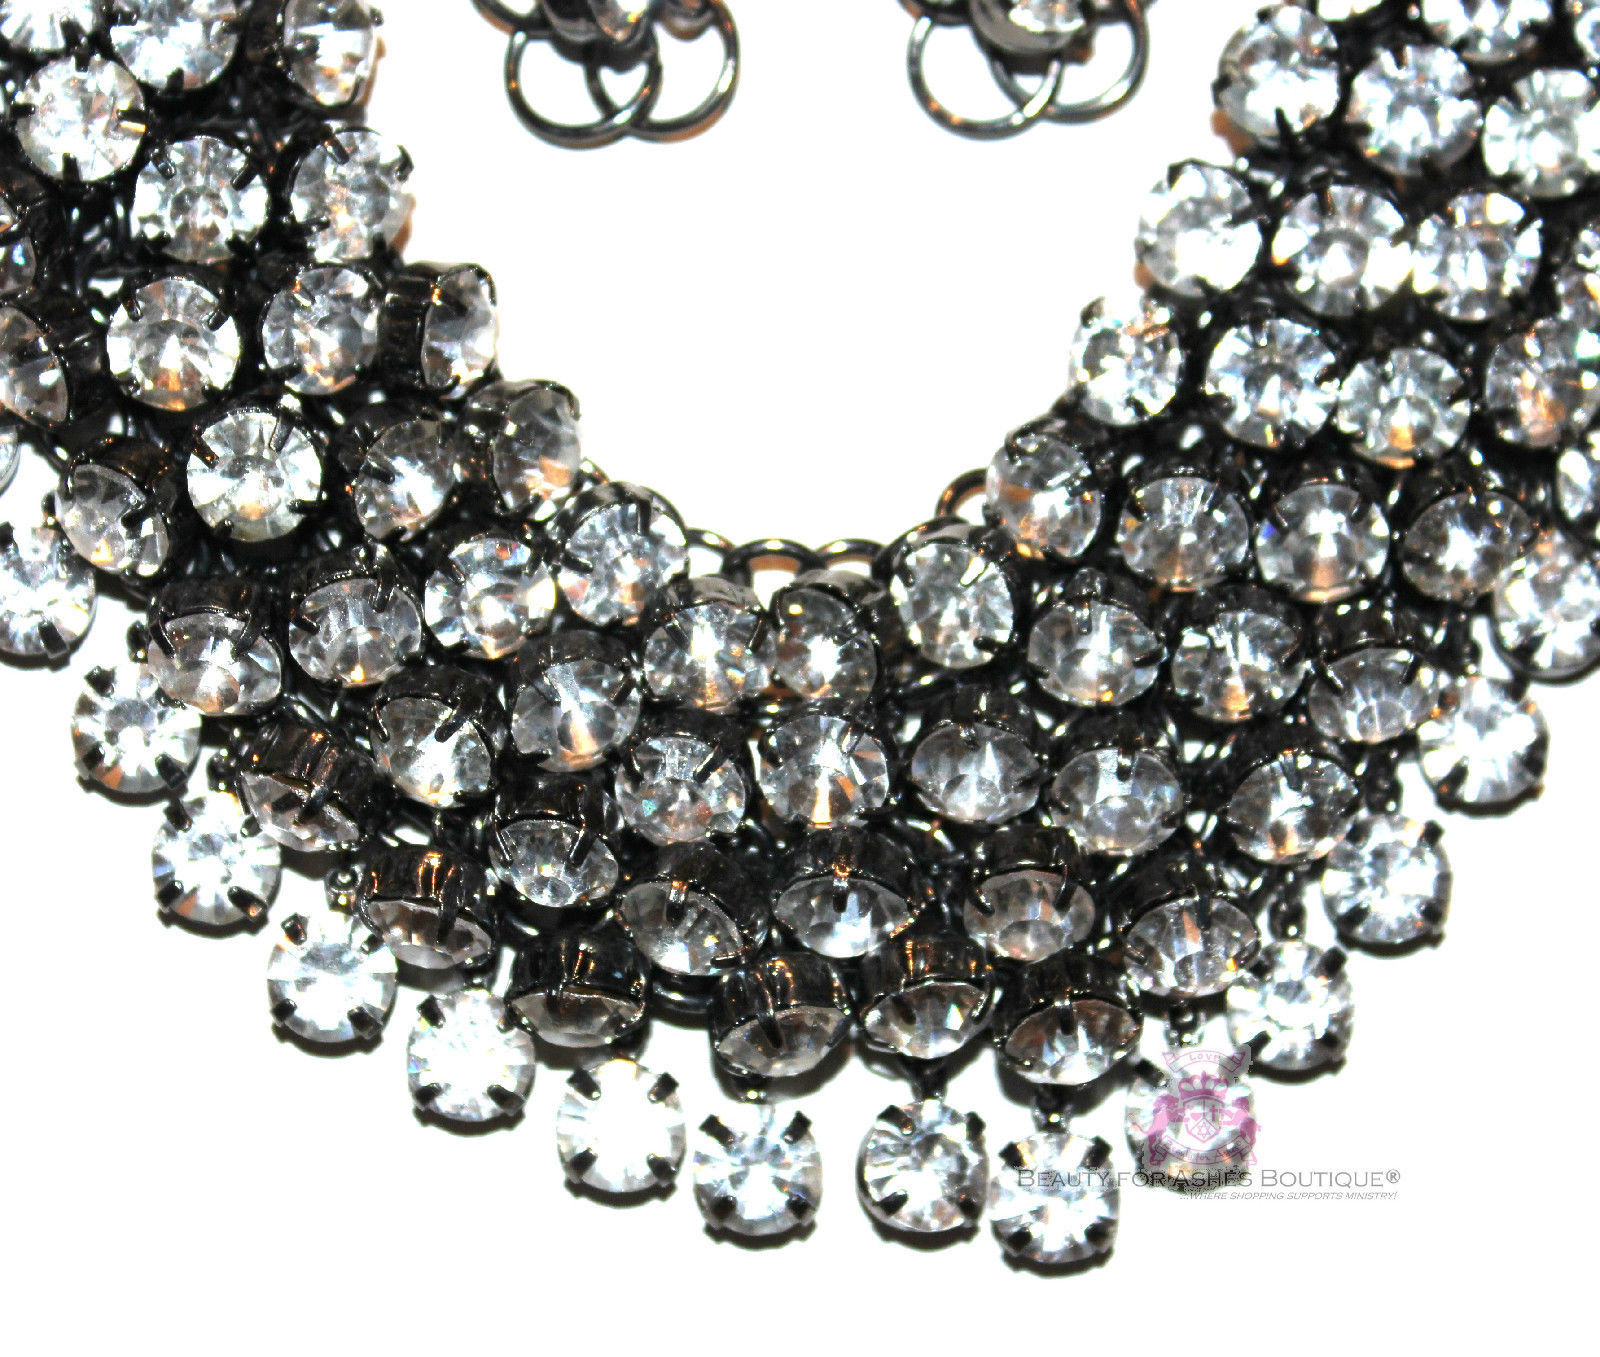 Chunky Womens Dressy Clear Prom Cascading Hematite Crystals Bib Necklace Set image 3